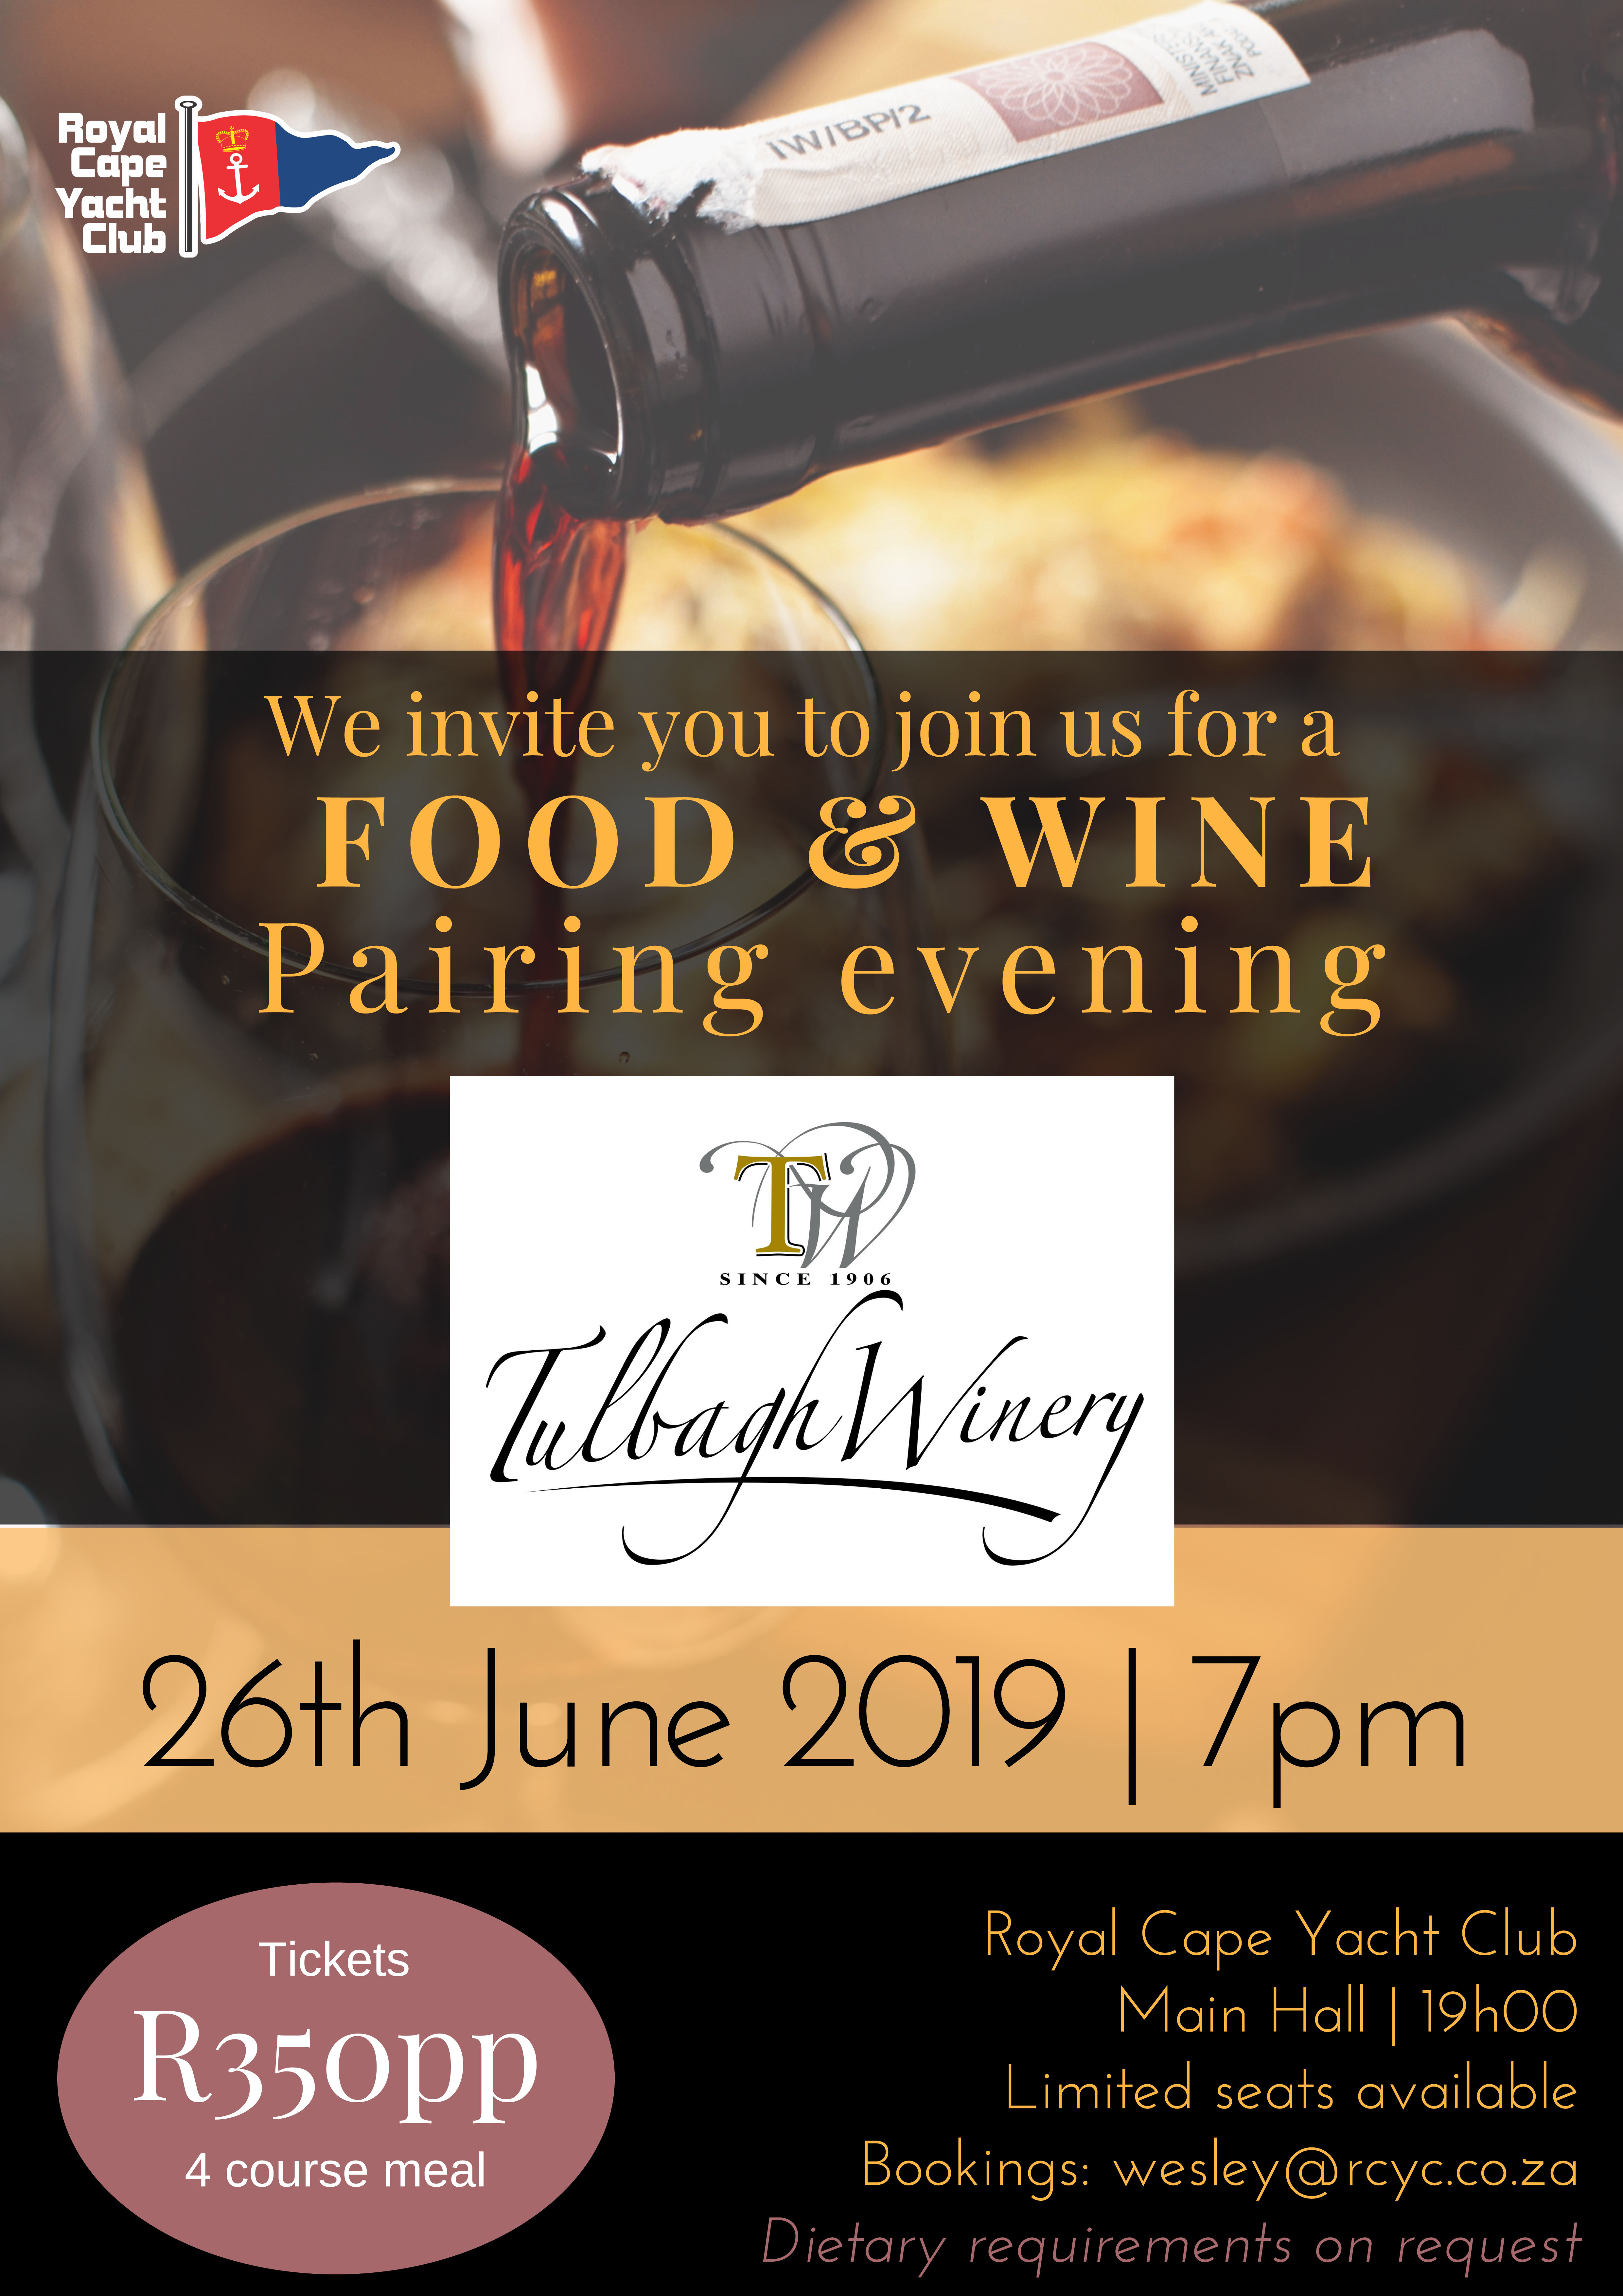 Food & Wine Pairing  – Tulbagh Winery